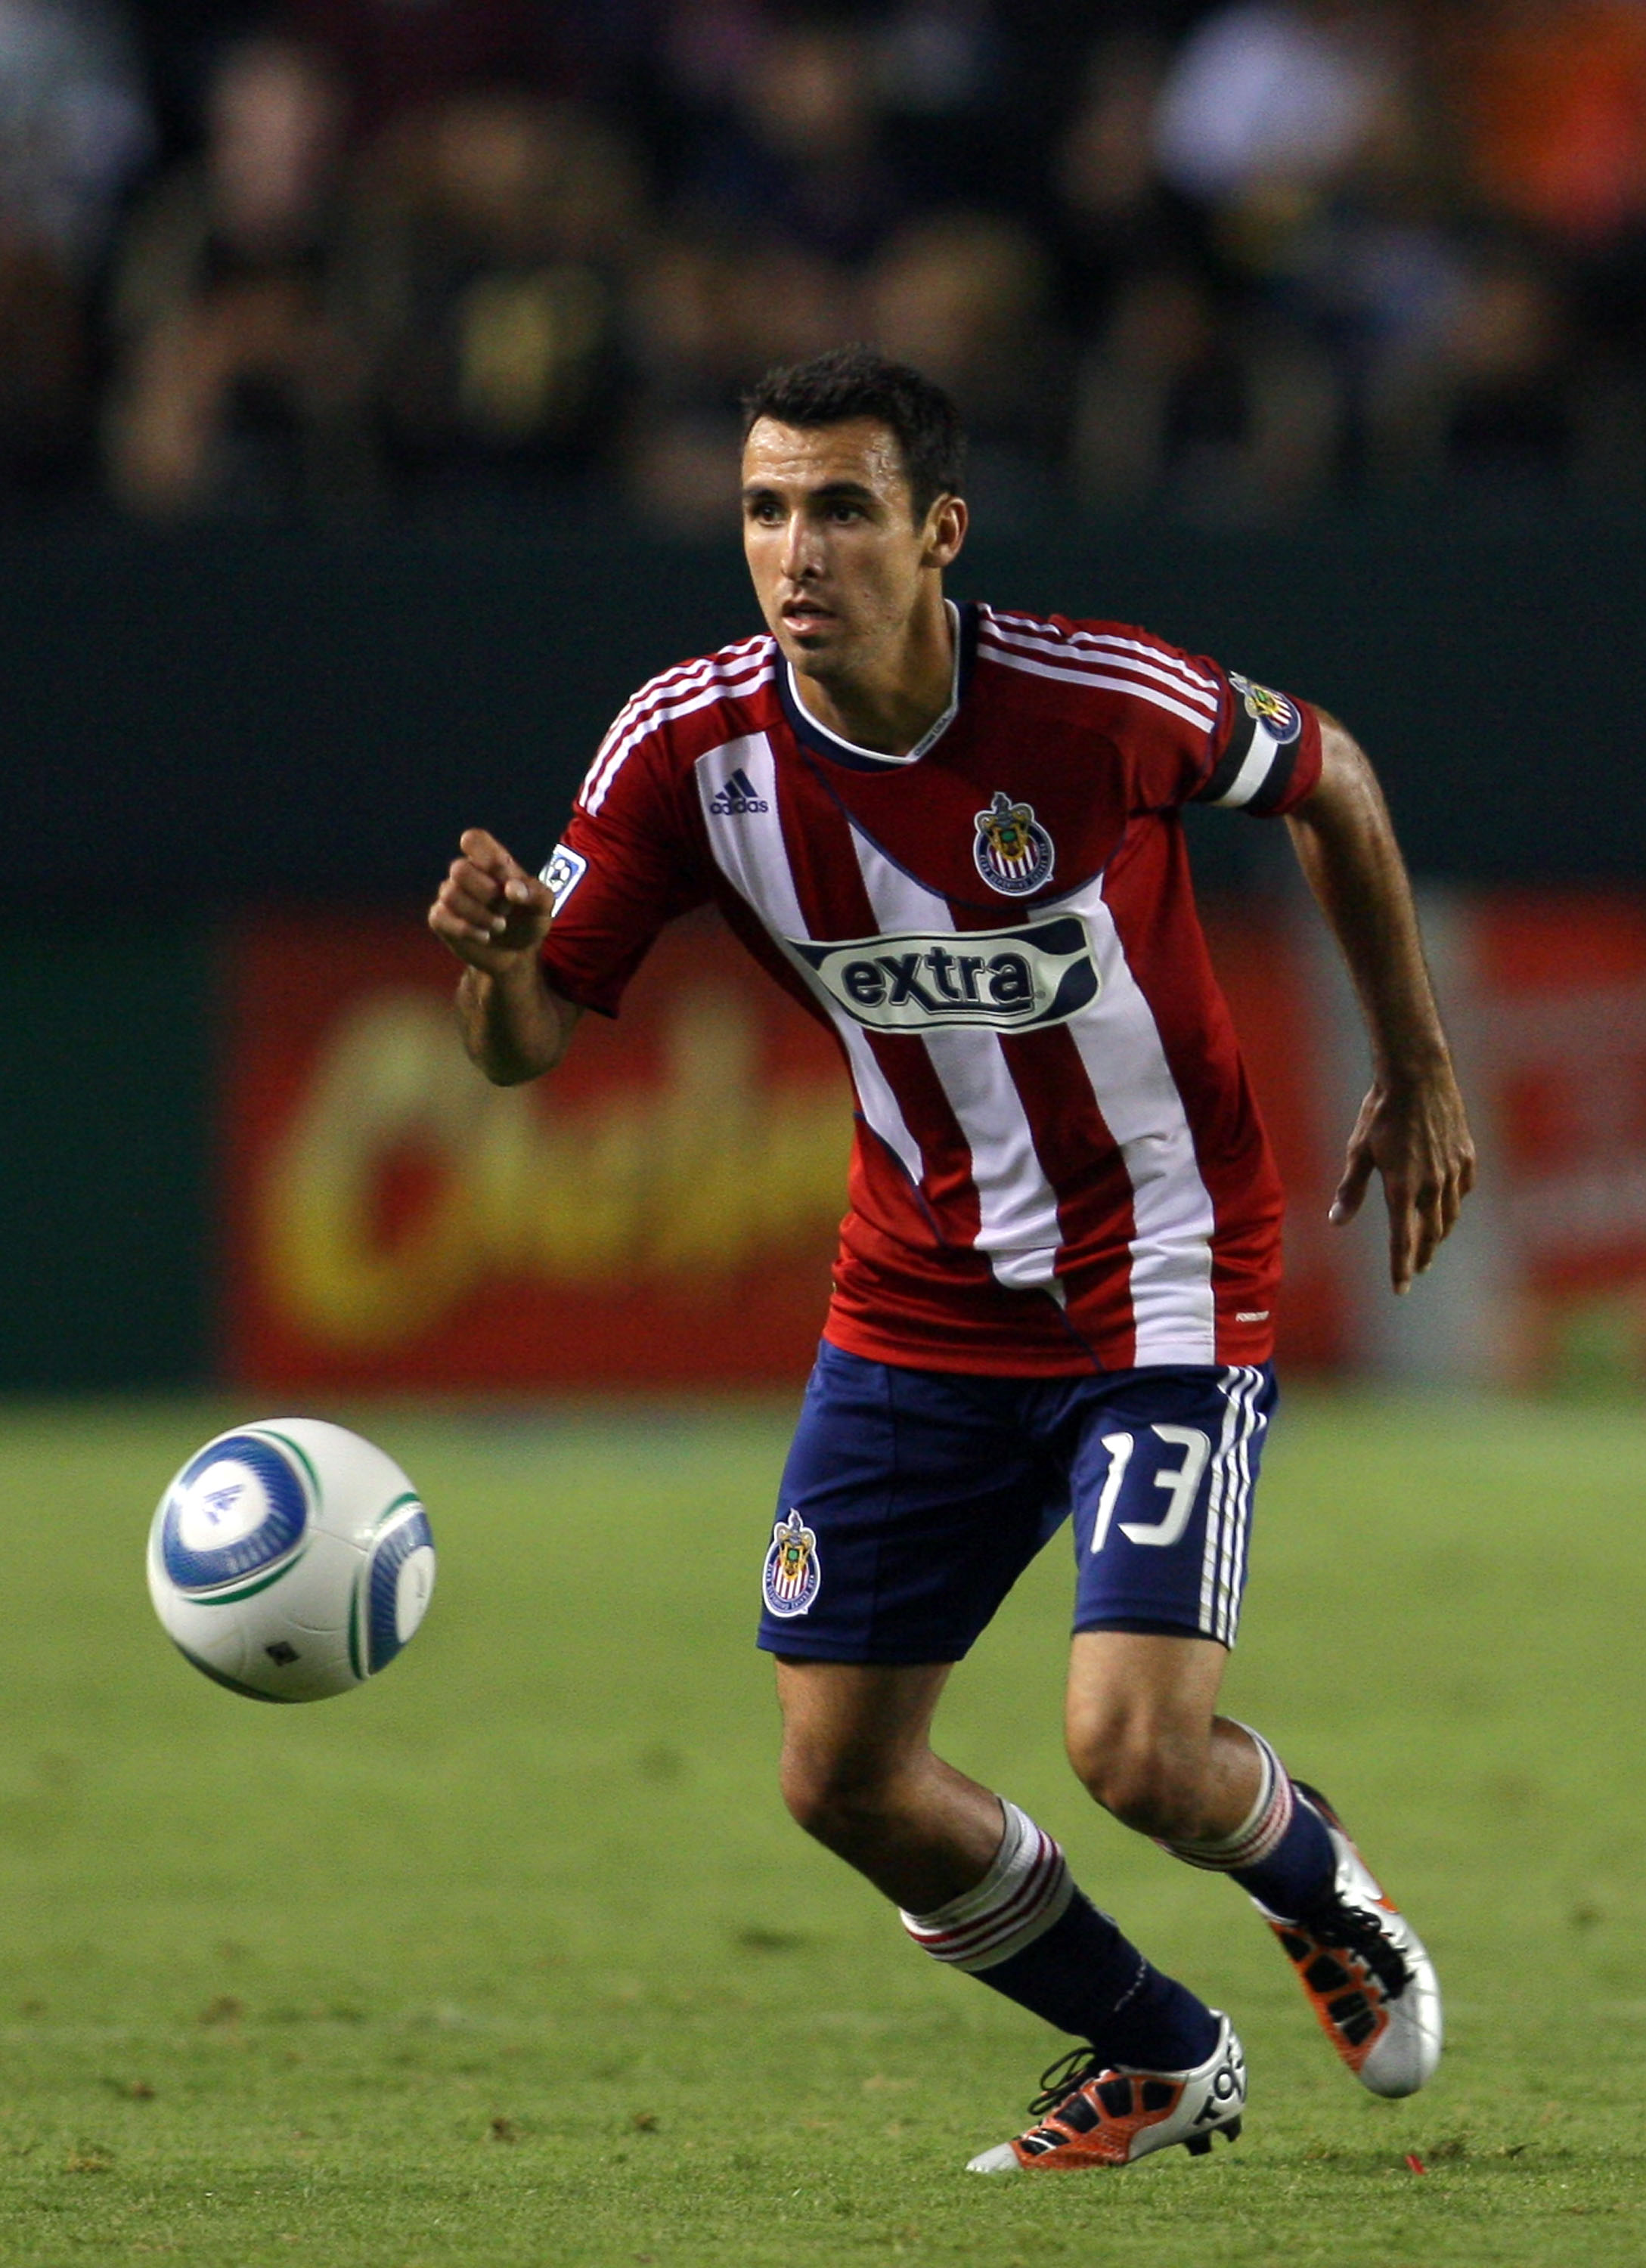 Bernstein with Chivas: Lining up an eventual move to LAFC?